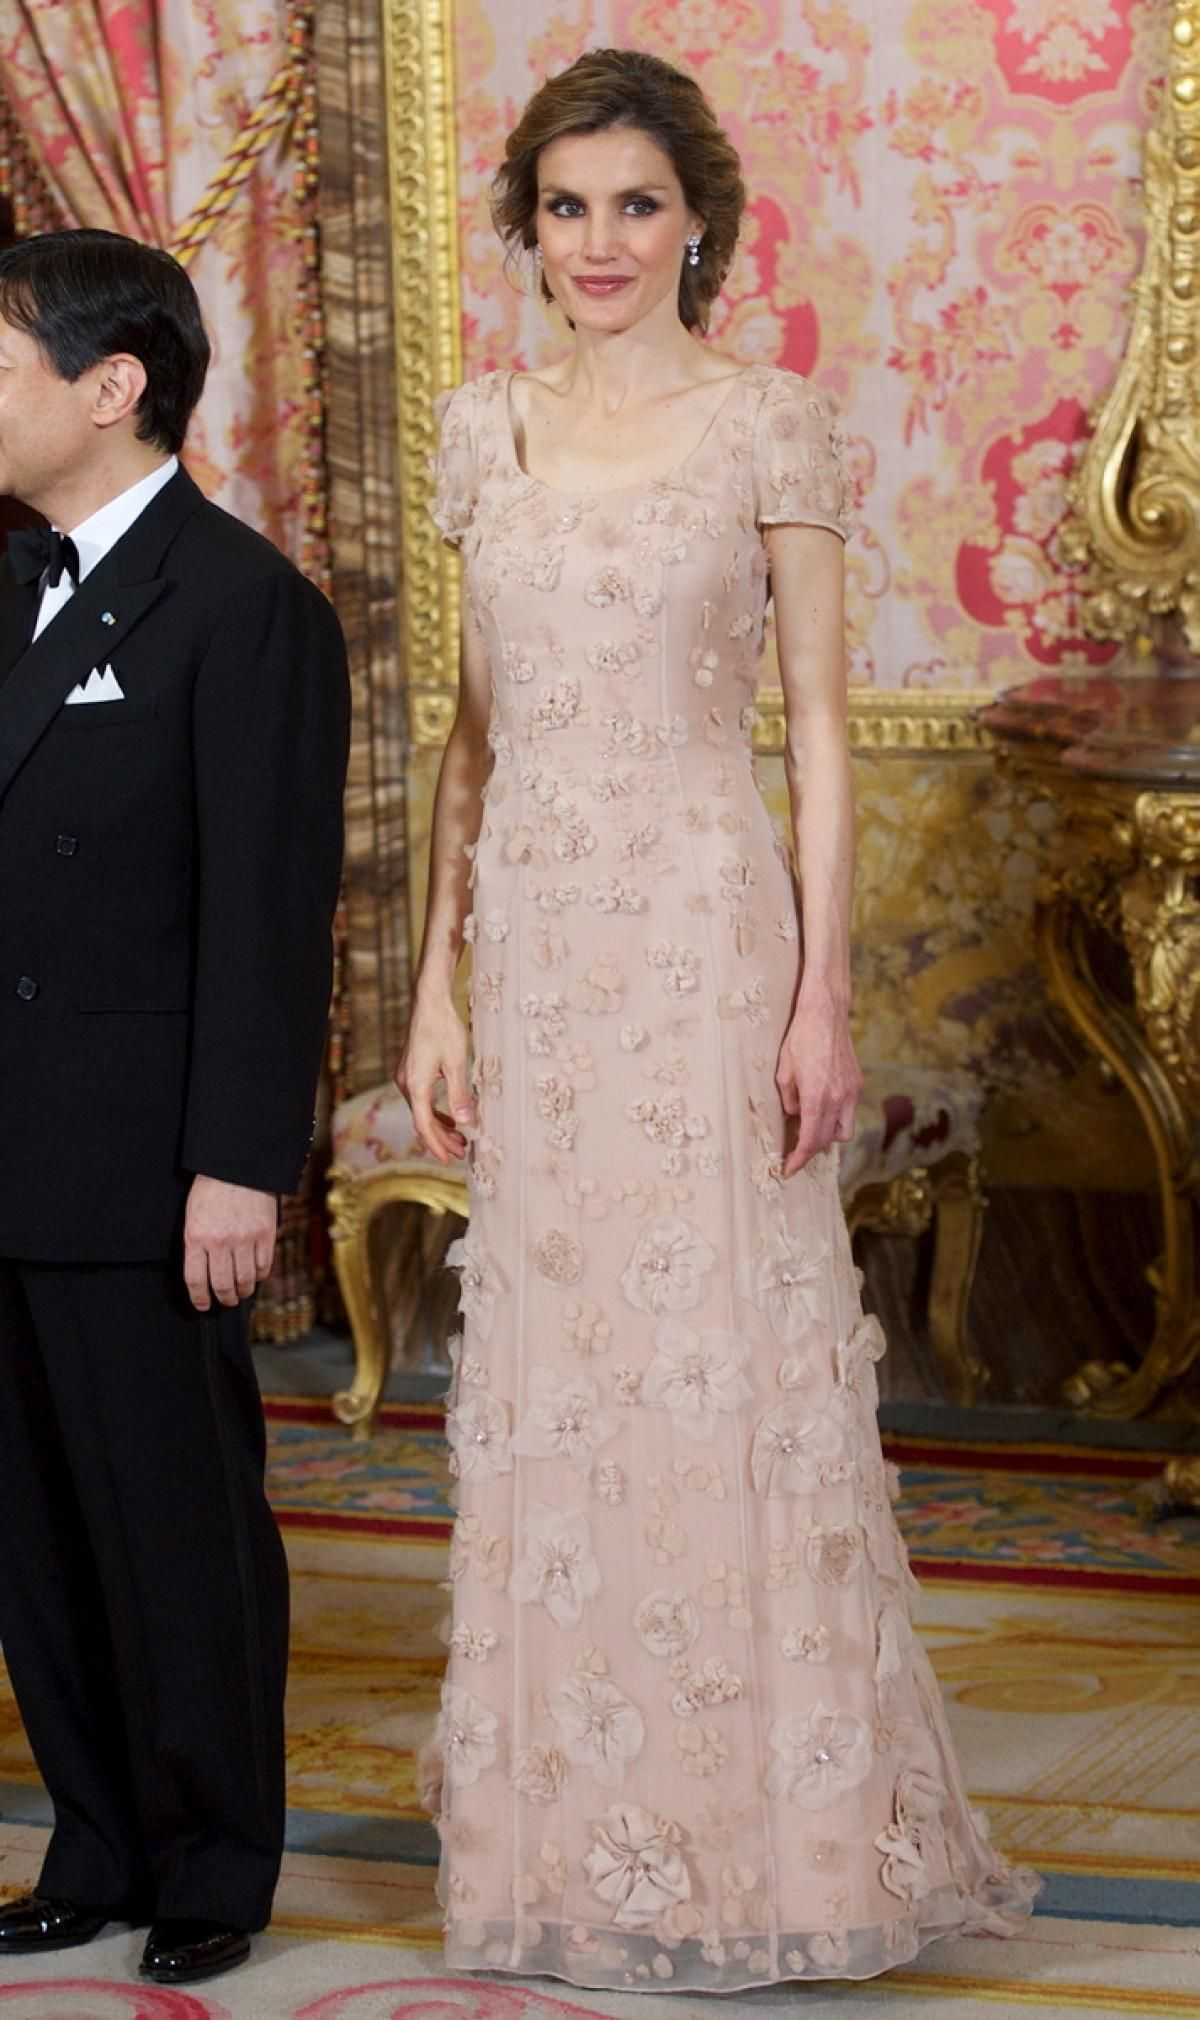 Princess letizia of spain photos meet the next queen of spain